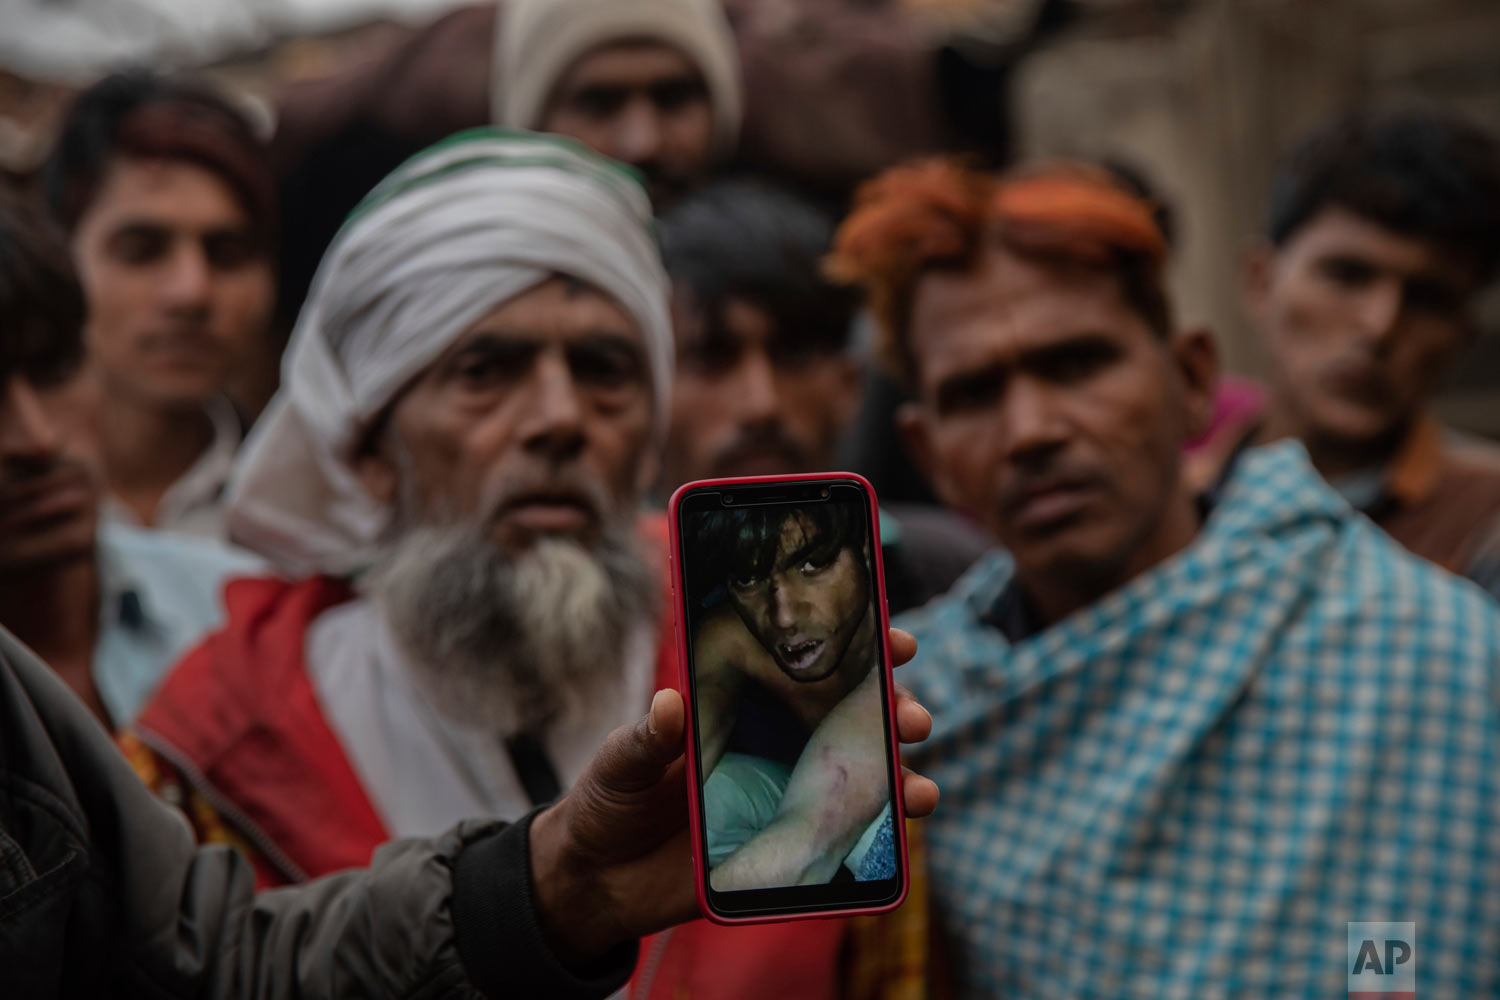 A man holds a phone showing a video of Muslim farmer Saghir Khan, 25, moments after being beaten, Mirzapur, India, Jan. 22, 2019. (AP Photo/Bernat Armangue)